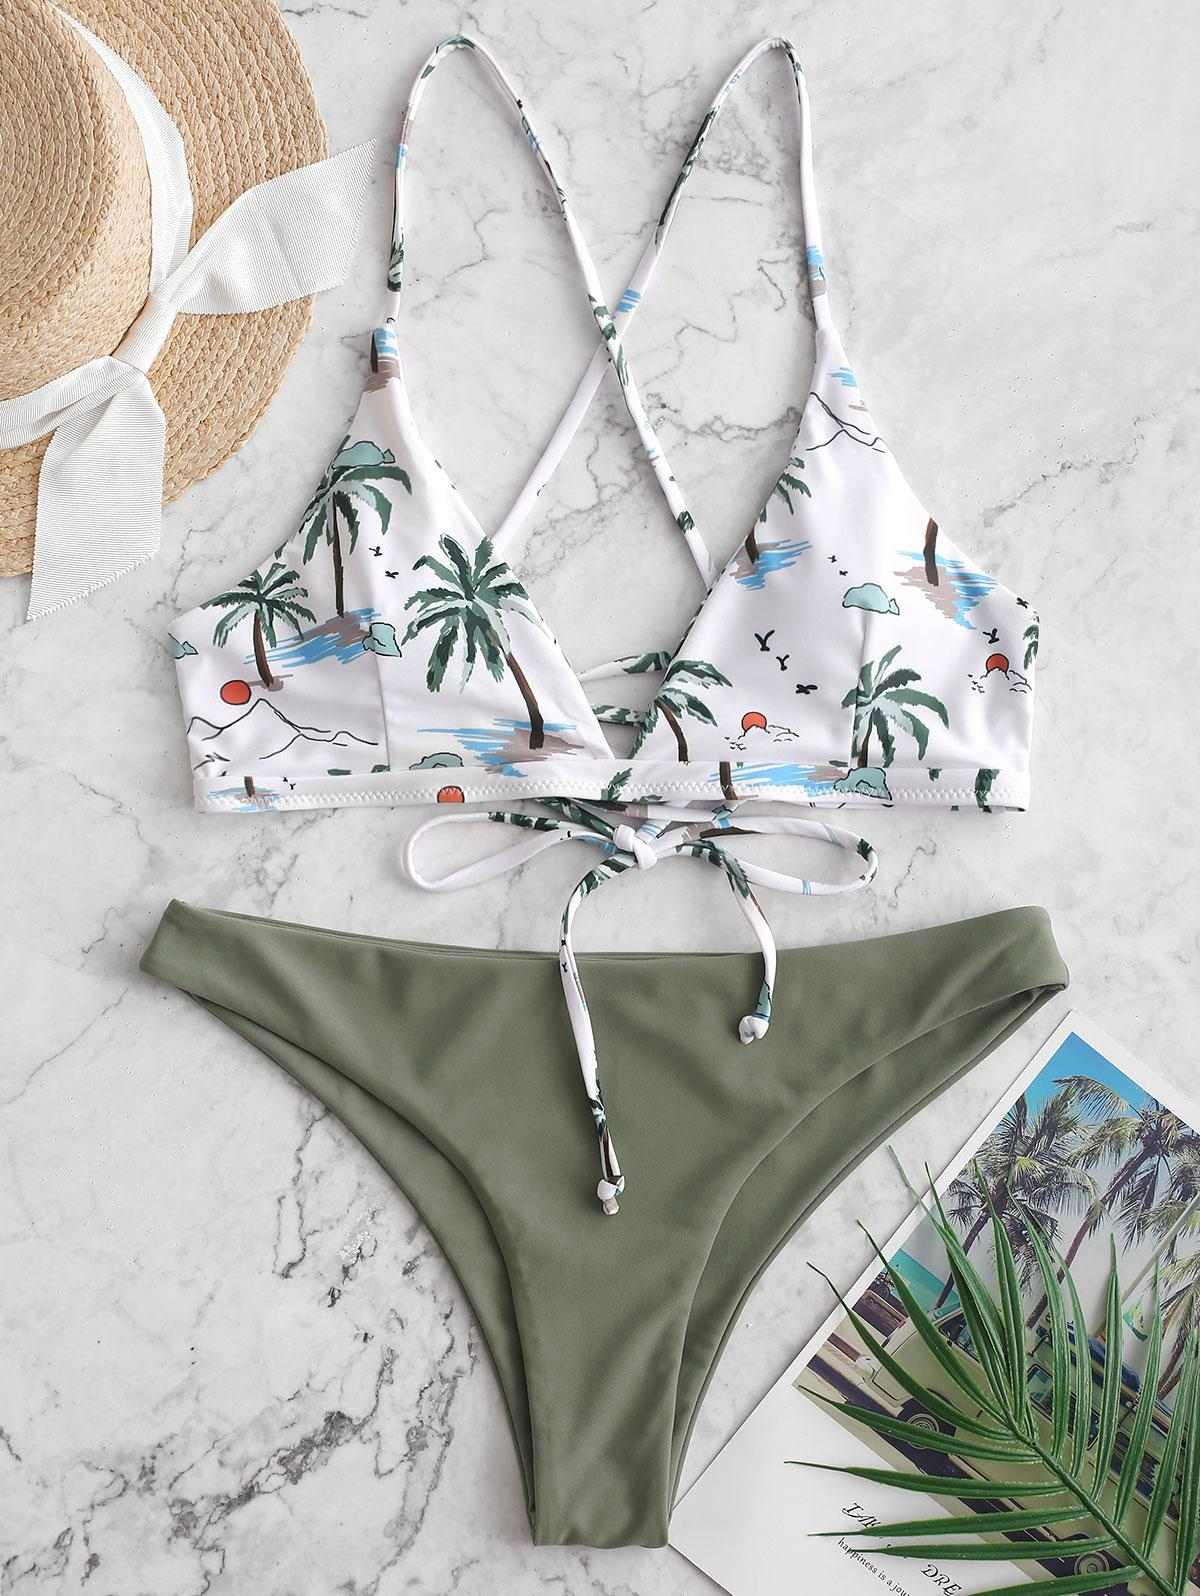 ZAFUL Coconut Palm Lace Up Padded Bikini Swimsuit фото